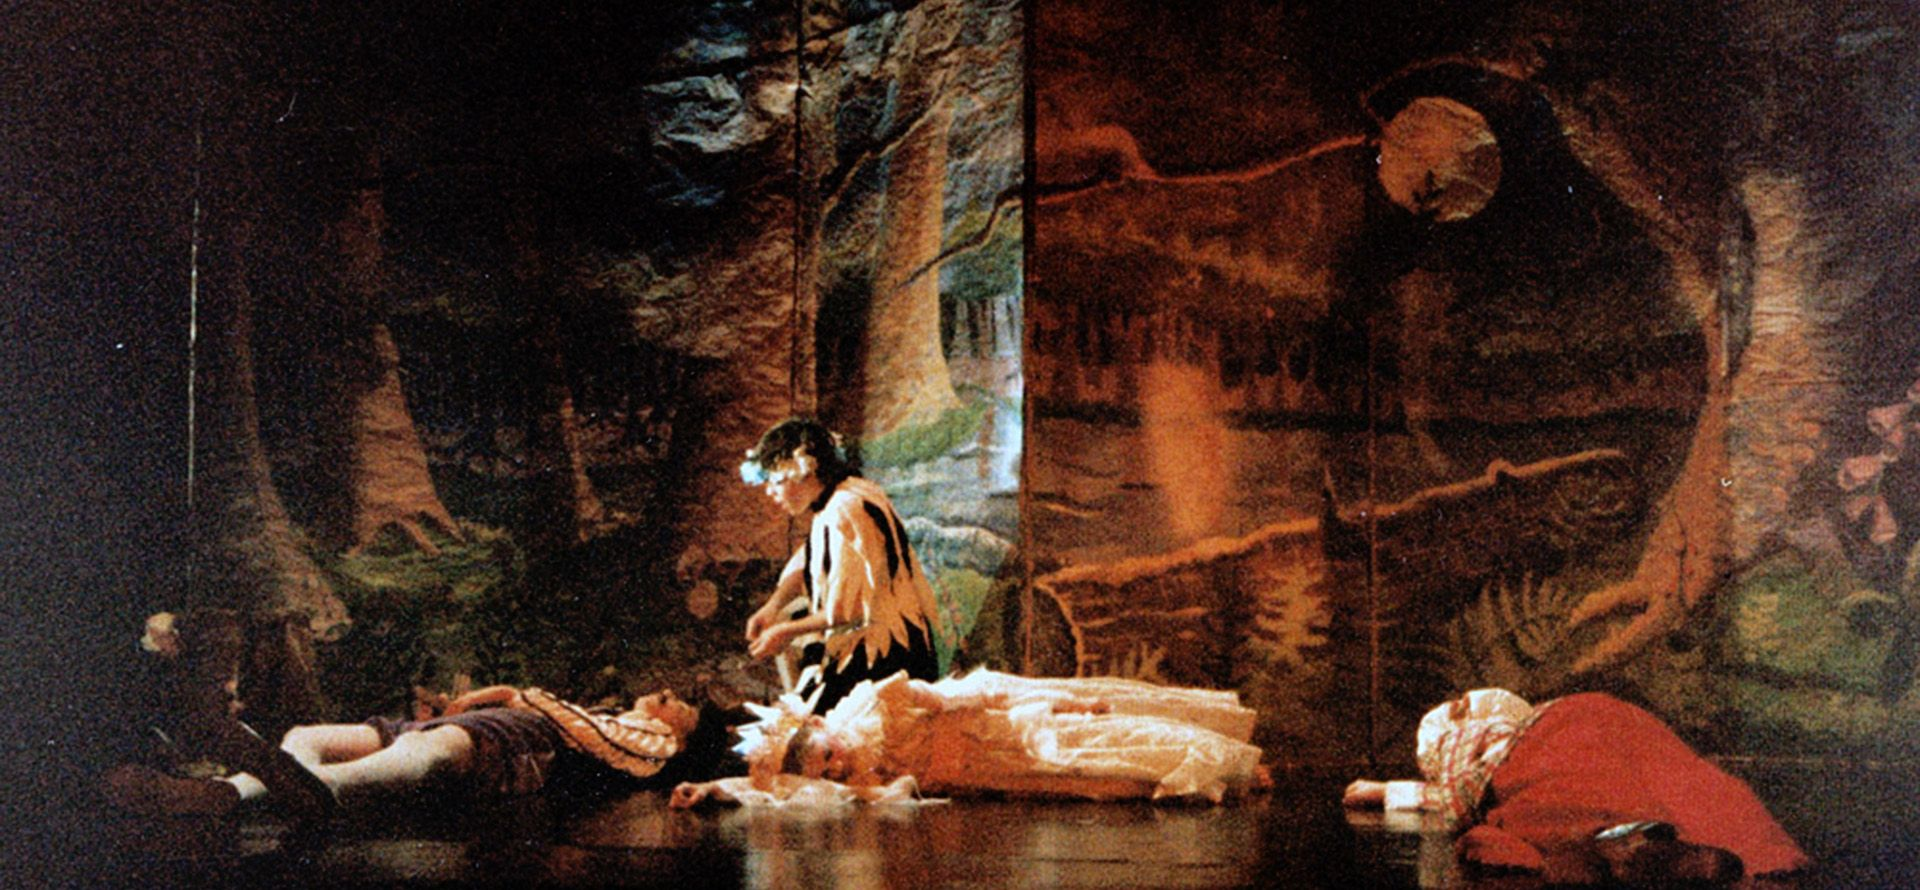 1987, A Midsummer Night's Dream